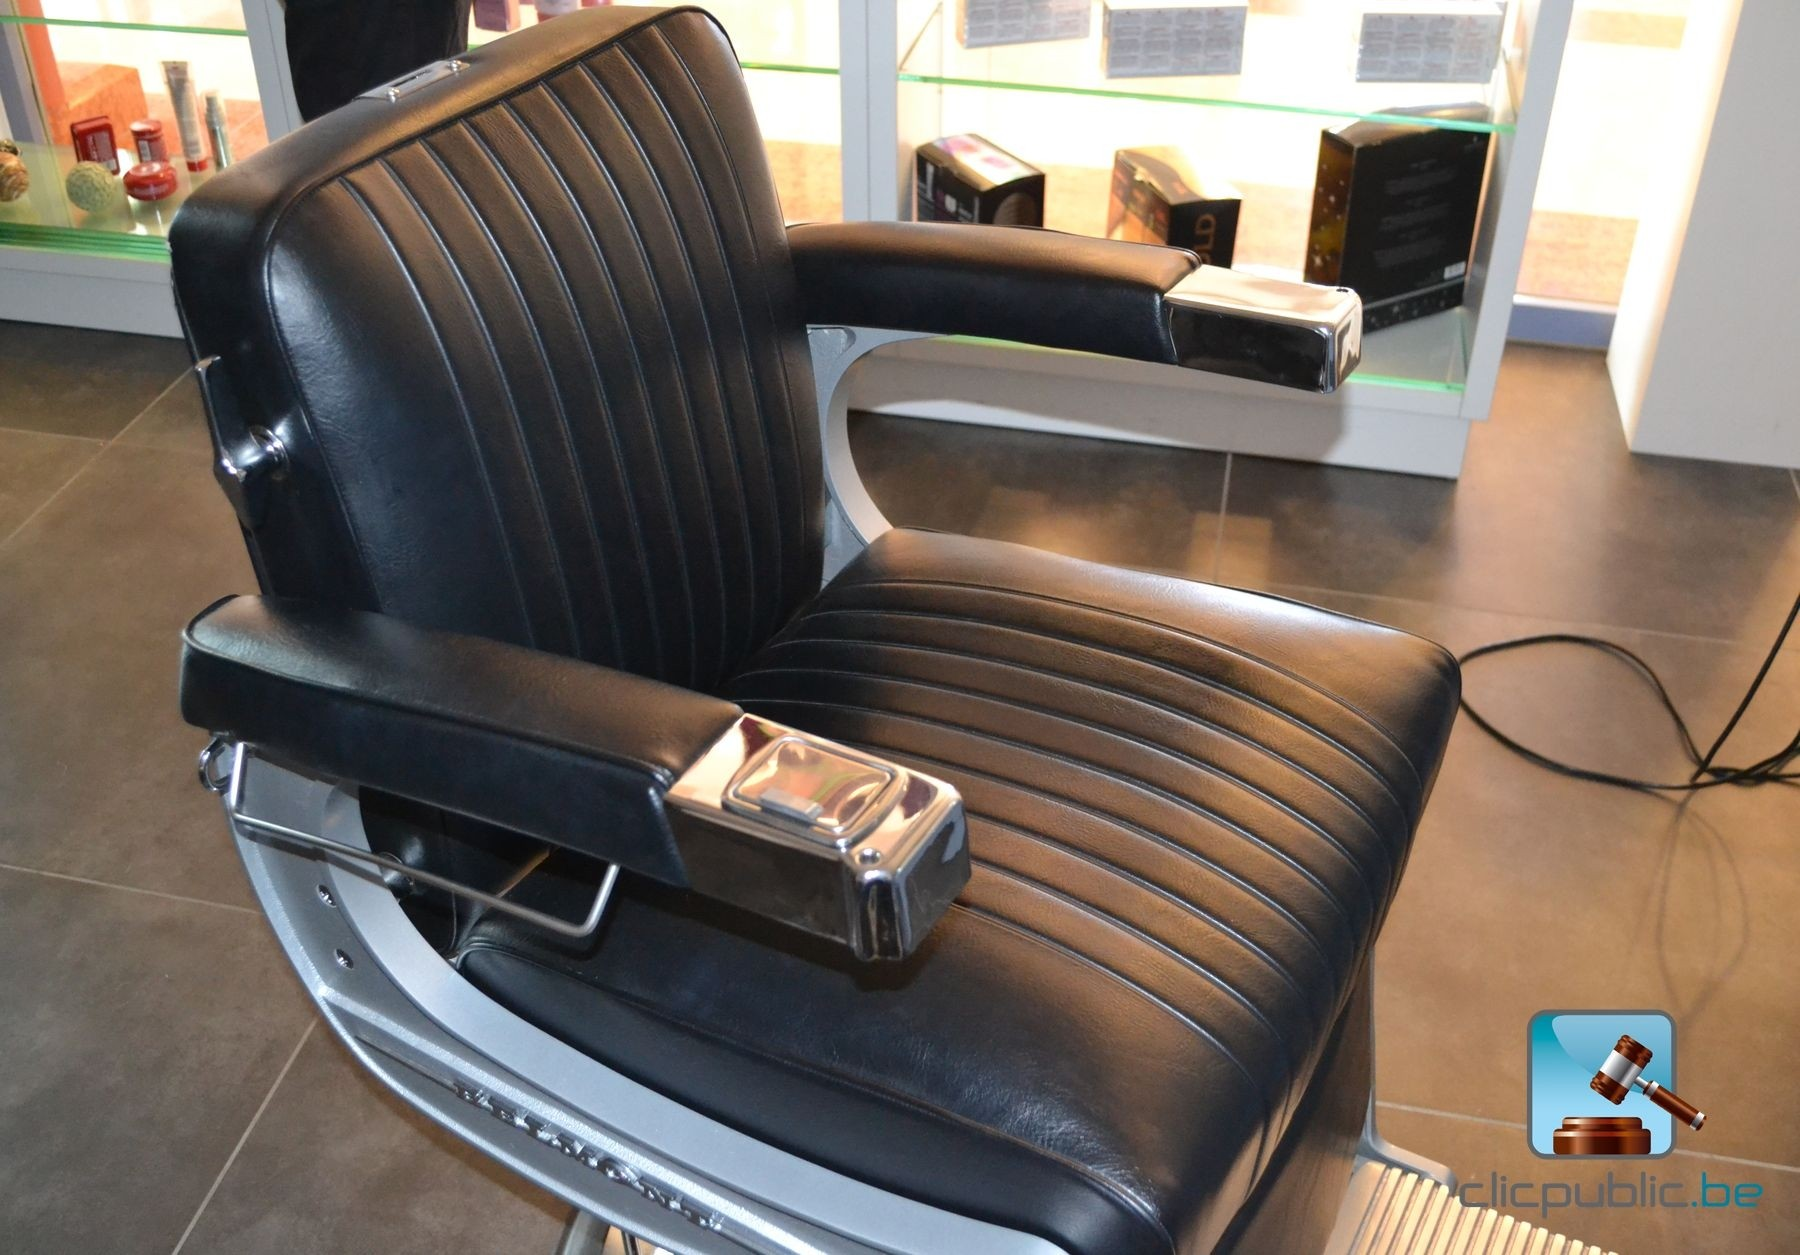 Barber chairs BELMONT TAKARA for sale on clicpublic